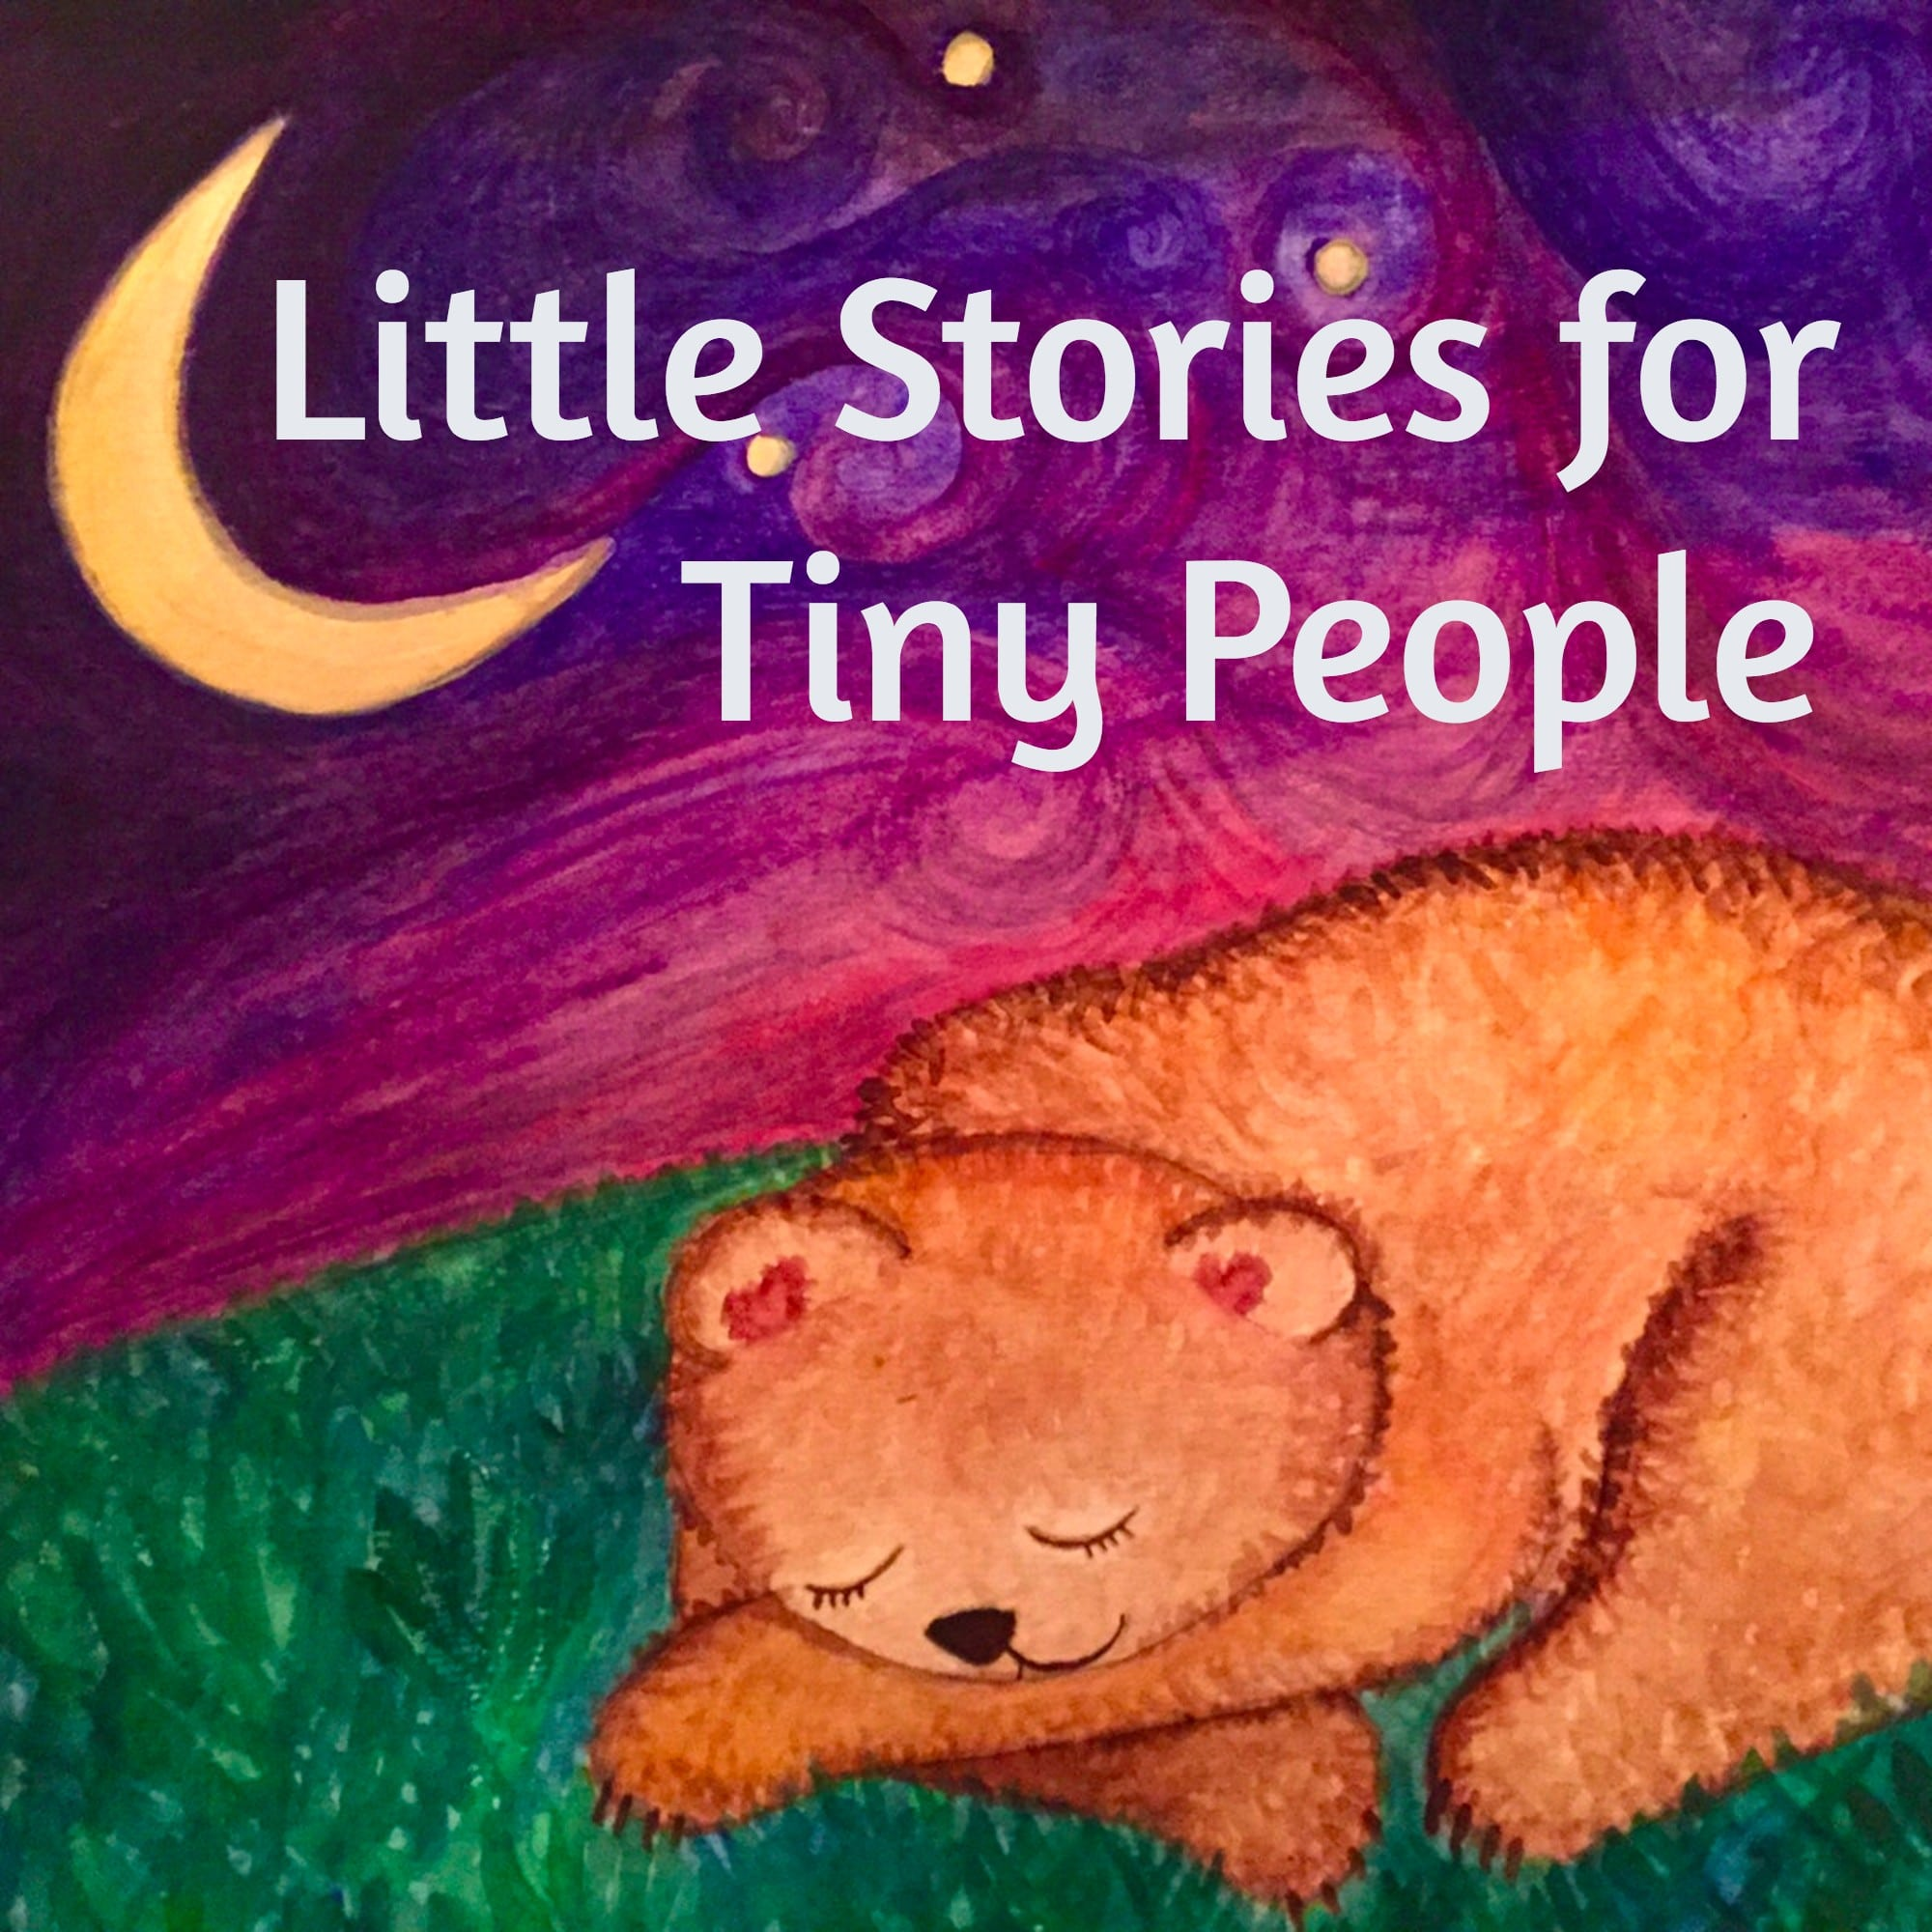 Little stories for tiny people - Podcast enfant